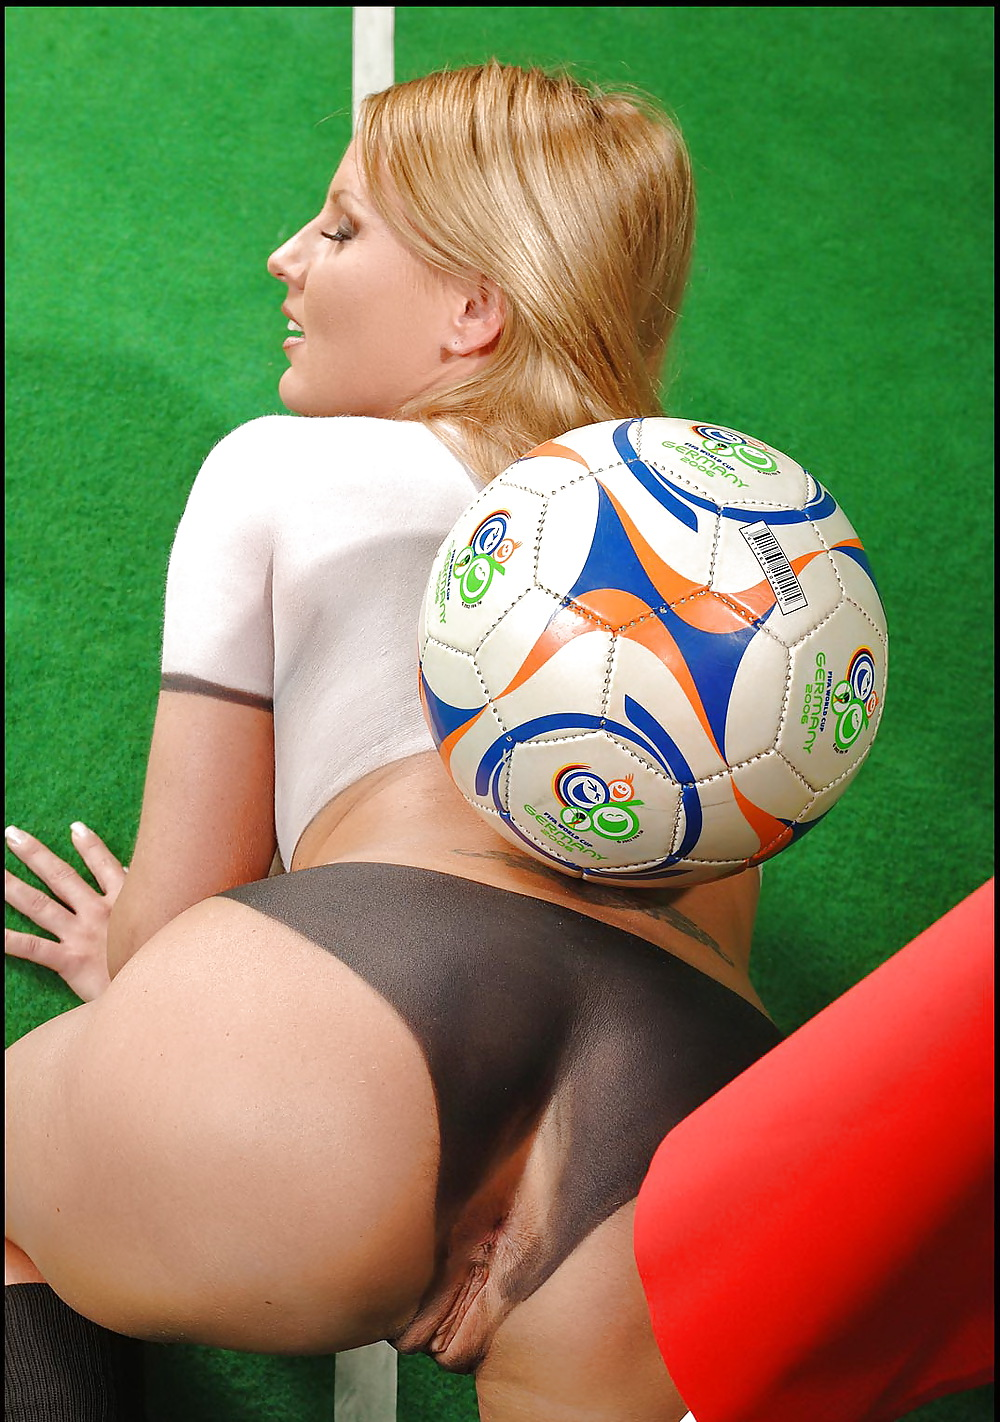 Sexy sports babes pussy pics, girlfriend gets her pussy covered in jism